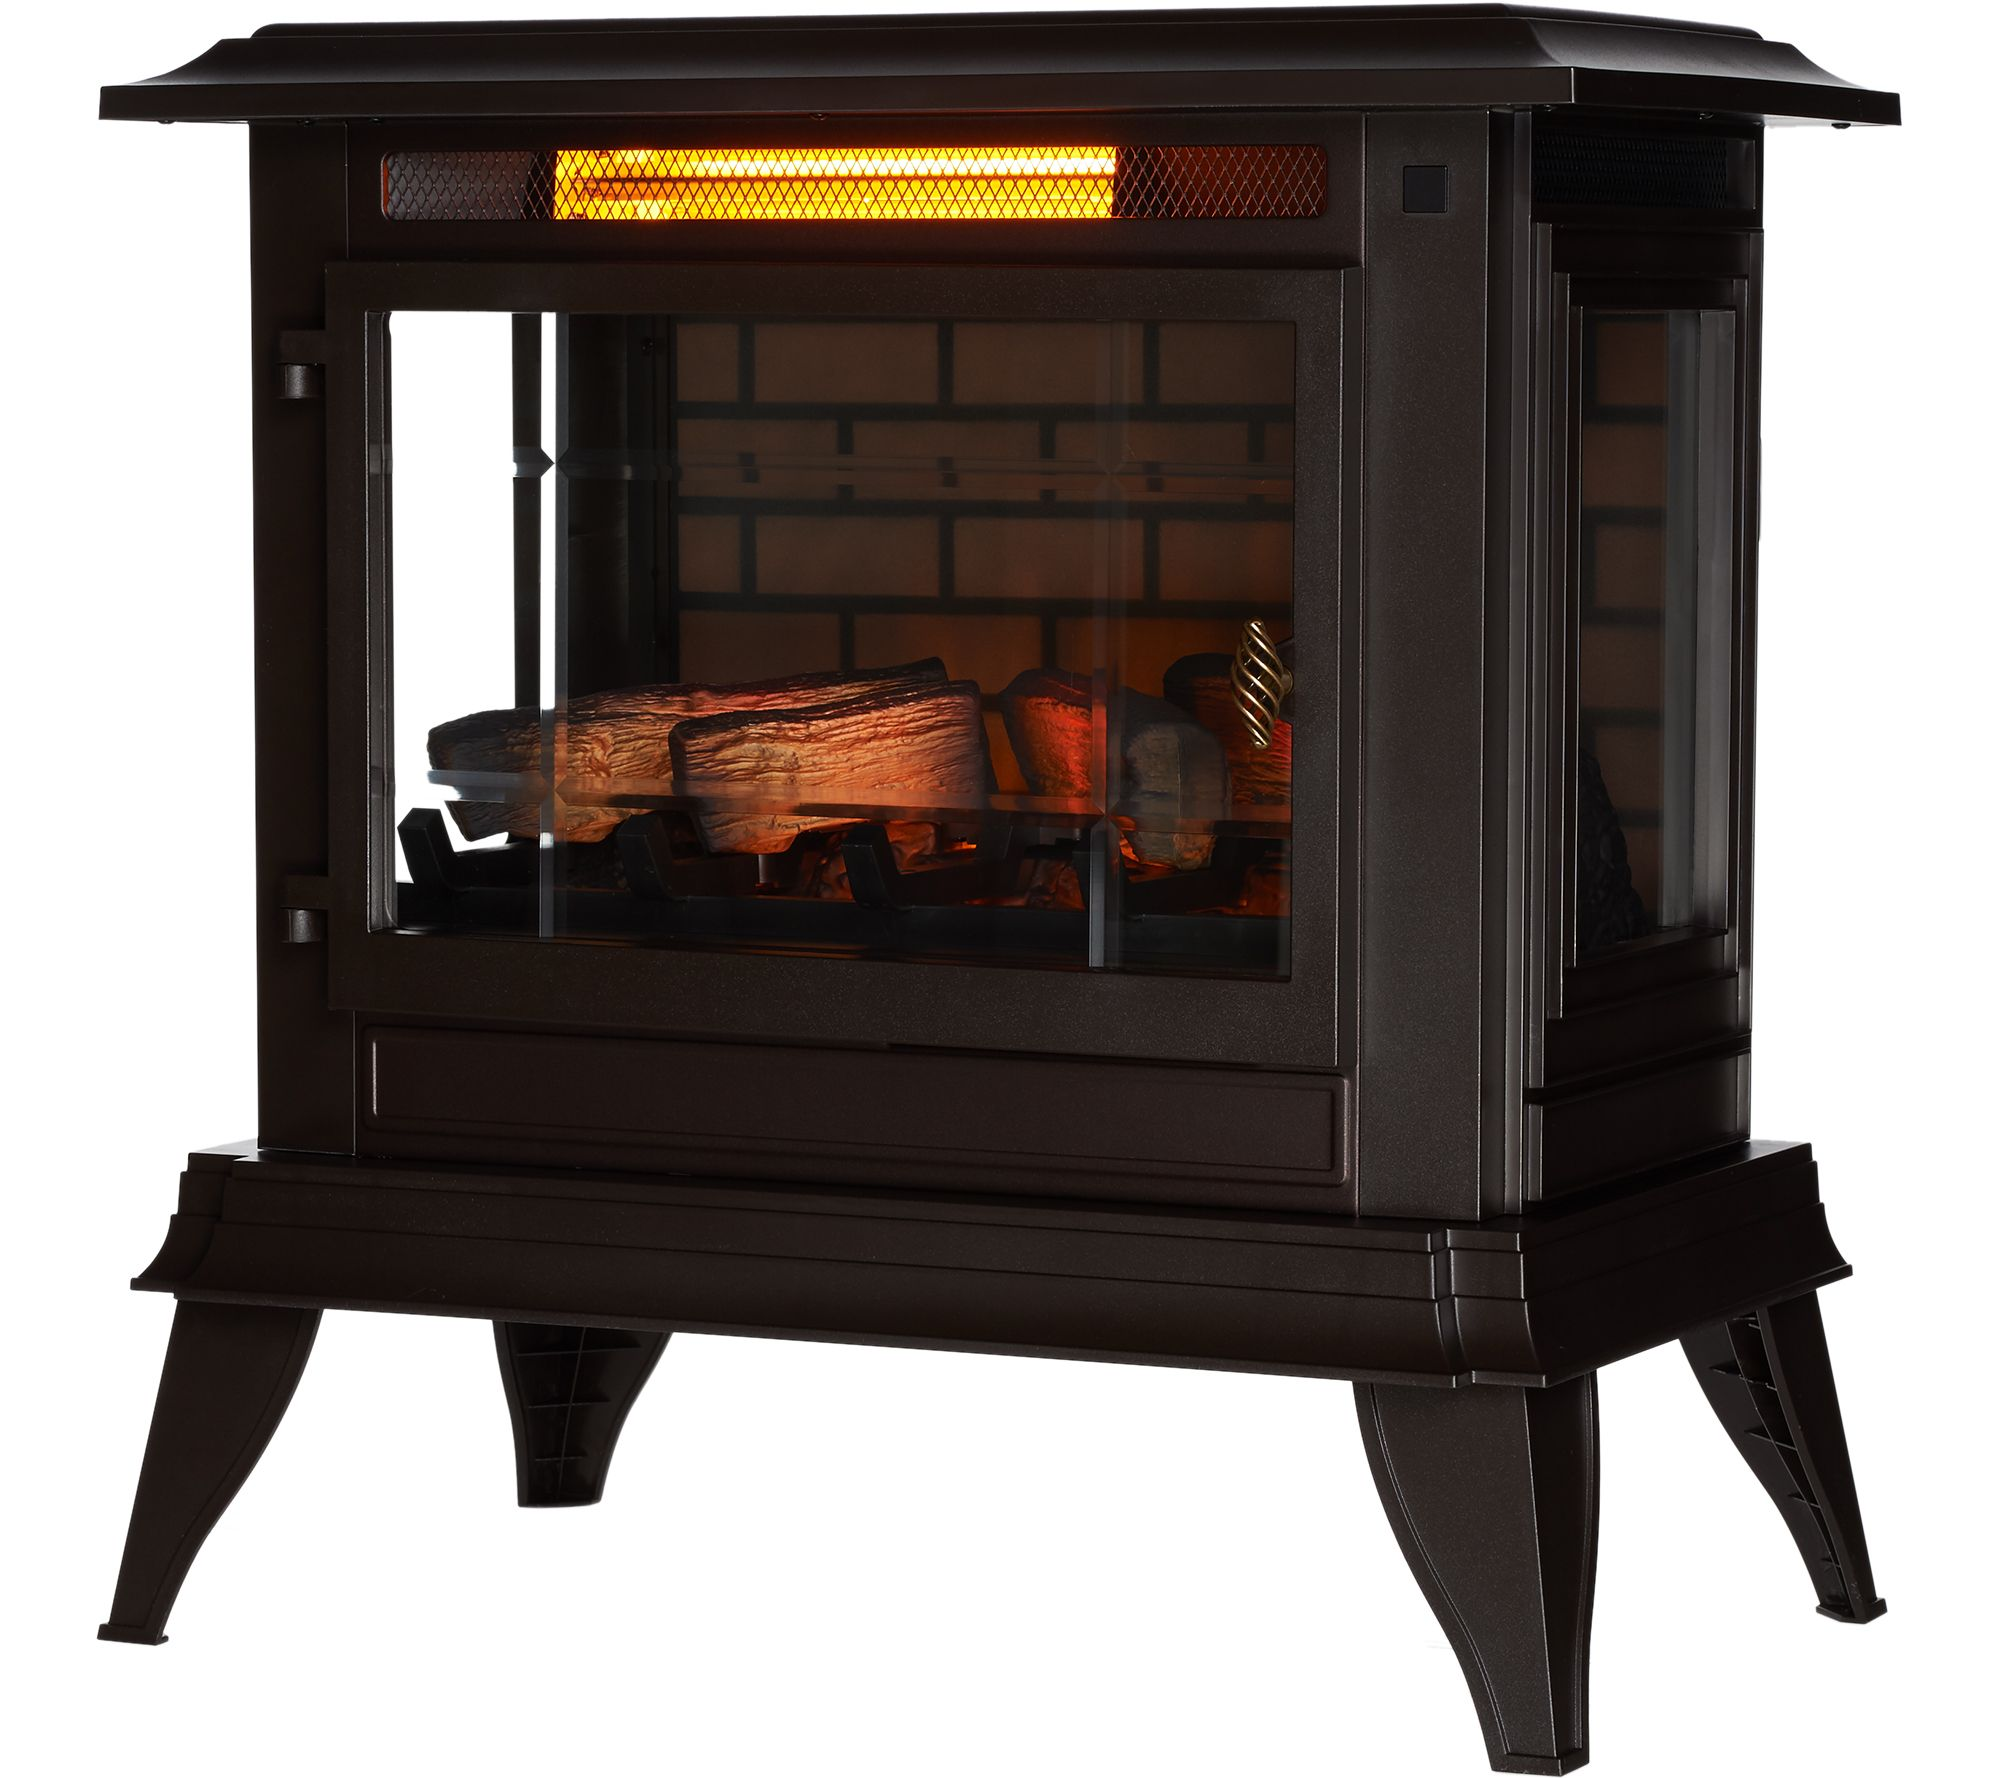 Duraflame Large Infragen Stove Heater With 3d Flame Remote Control Rocket Diagram Oven Fireplace Earthen Pint Page 1